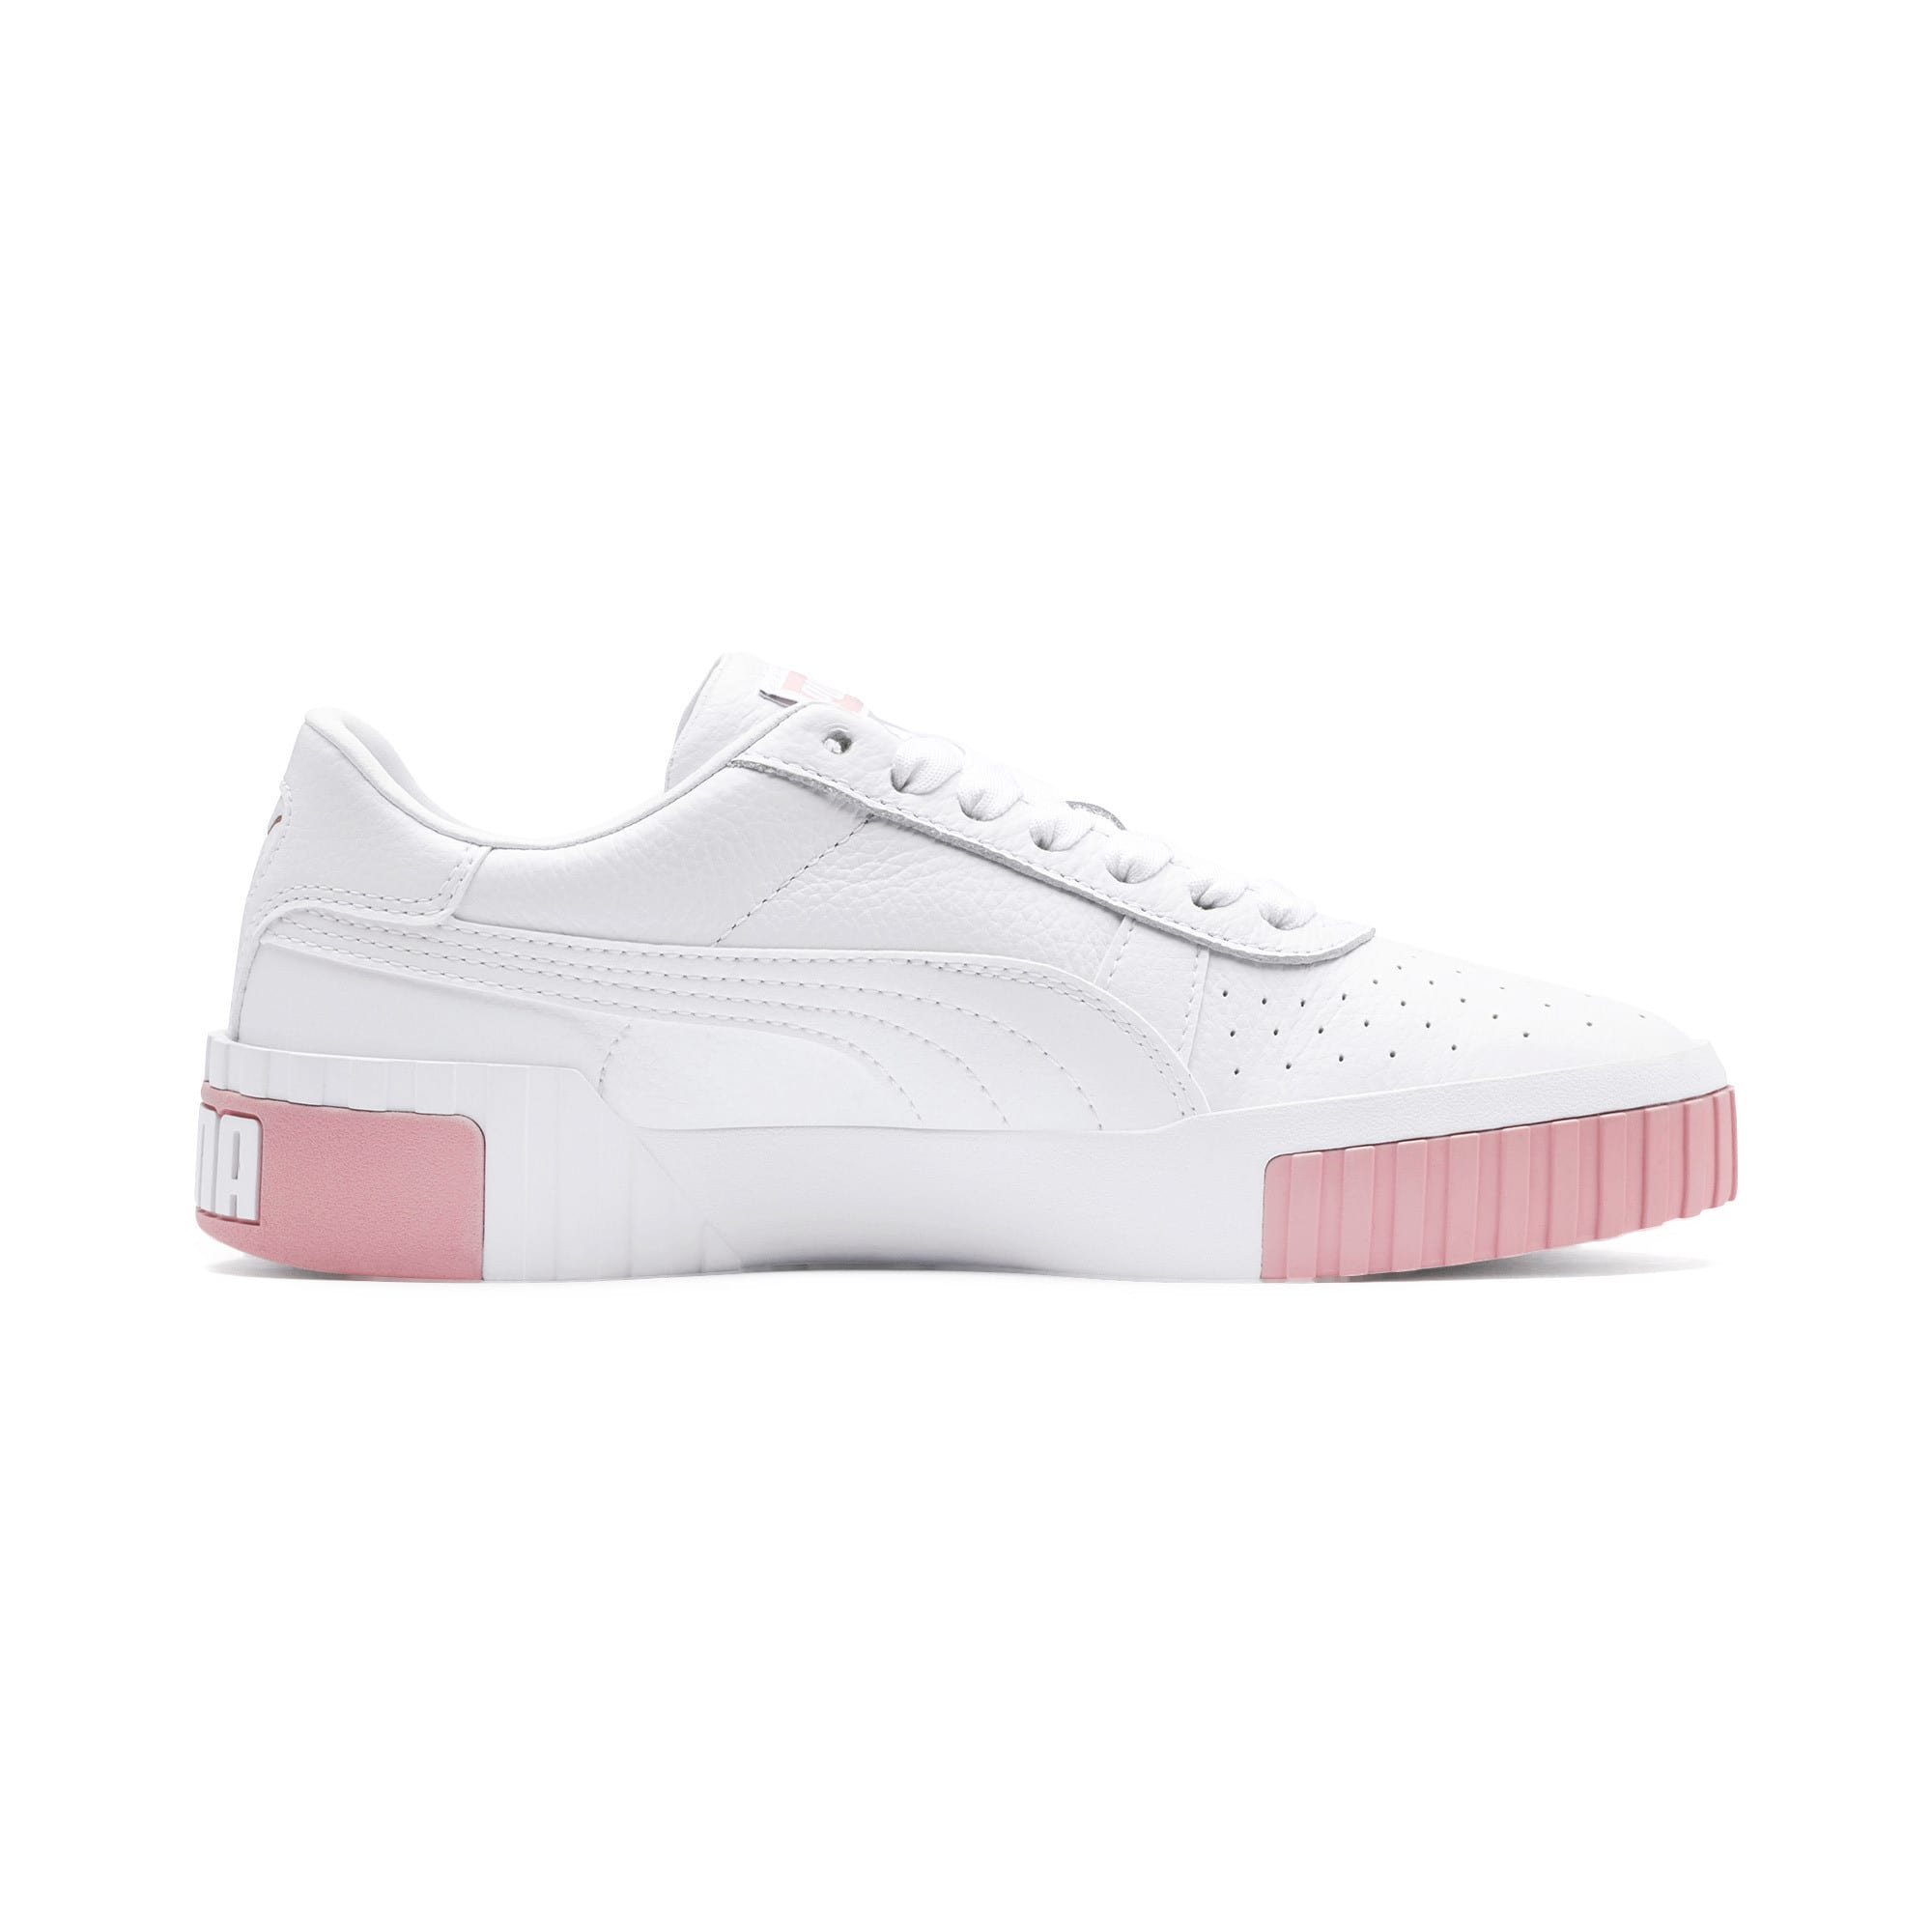 Thumbnail 7 of Cali Women's Trainers, Puma White-Rose Gold, medium-IND